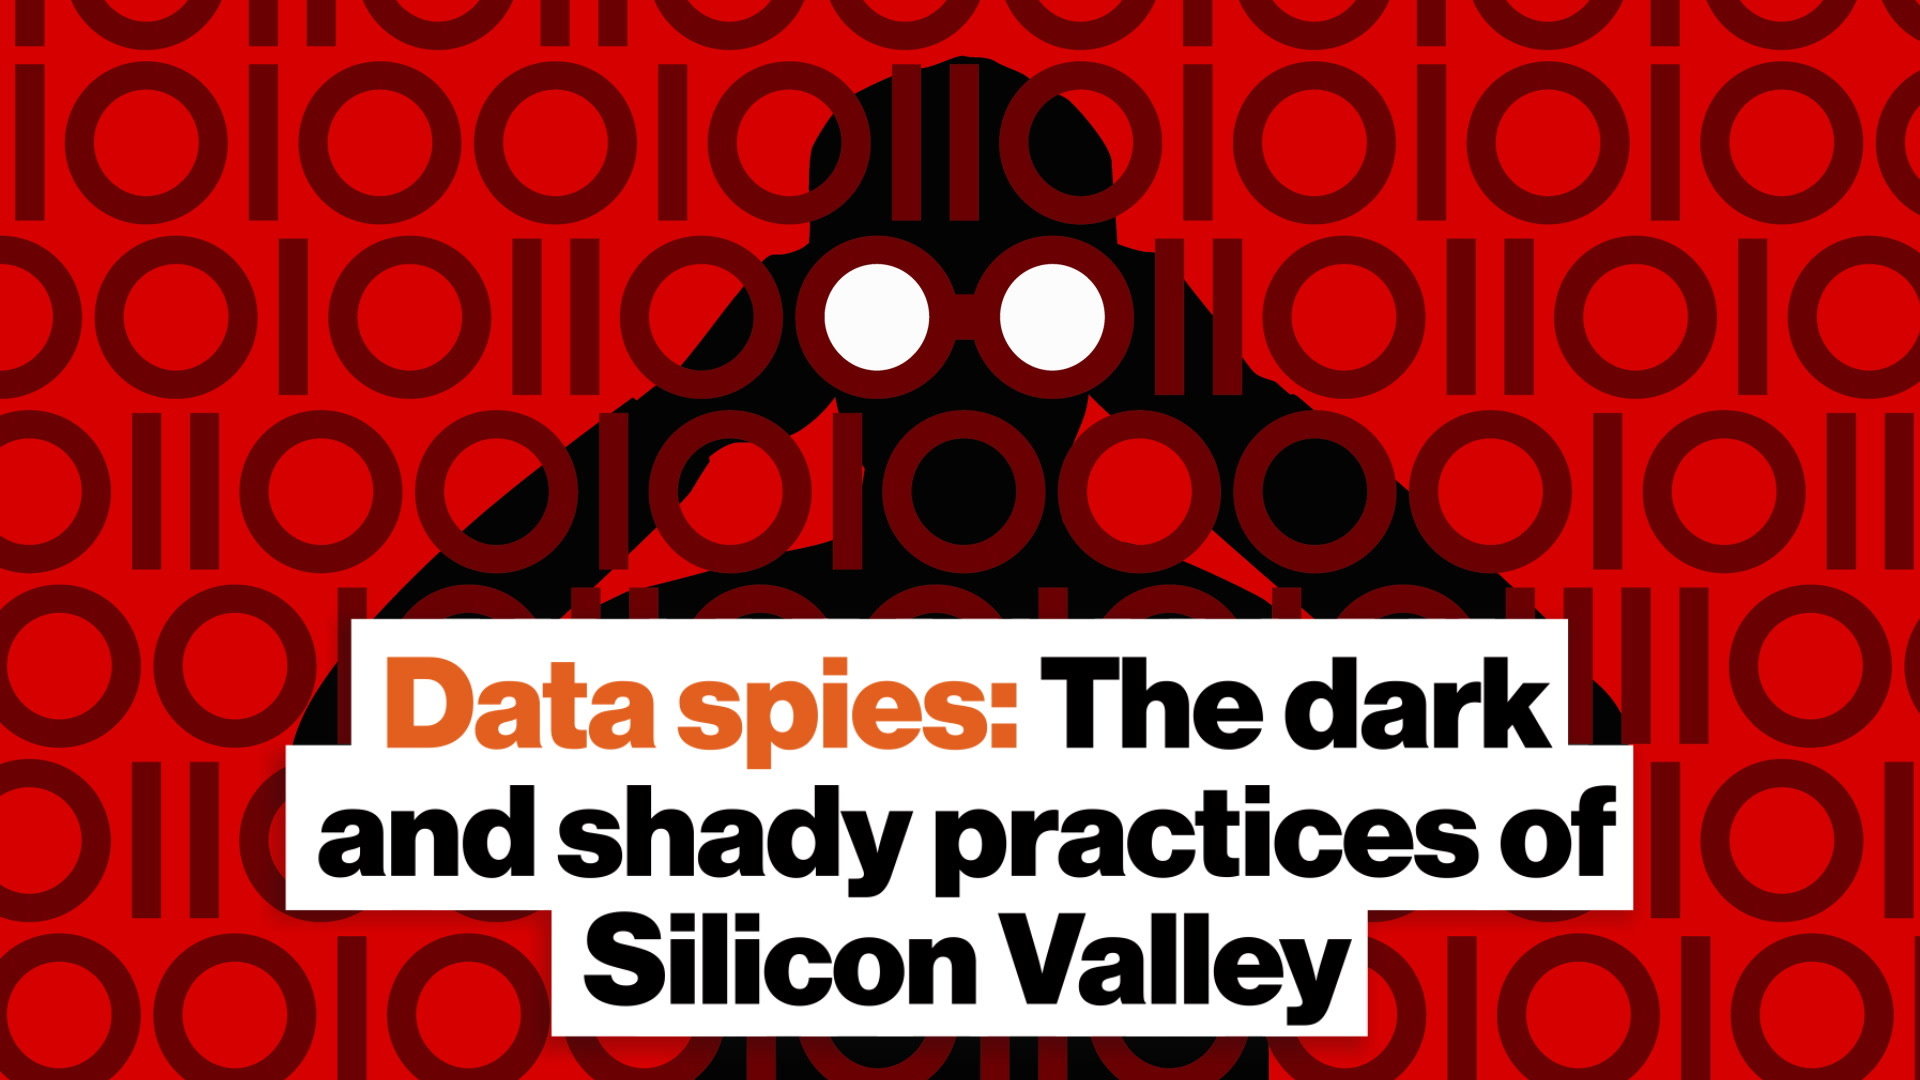 Data spies: The dark and shady practices of Silicon Valley